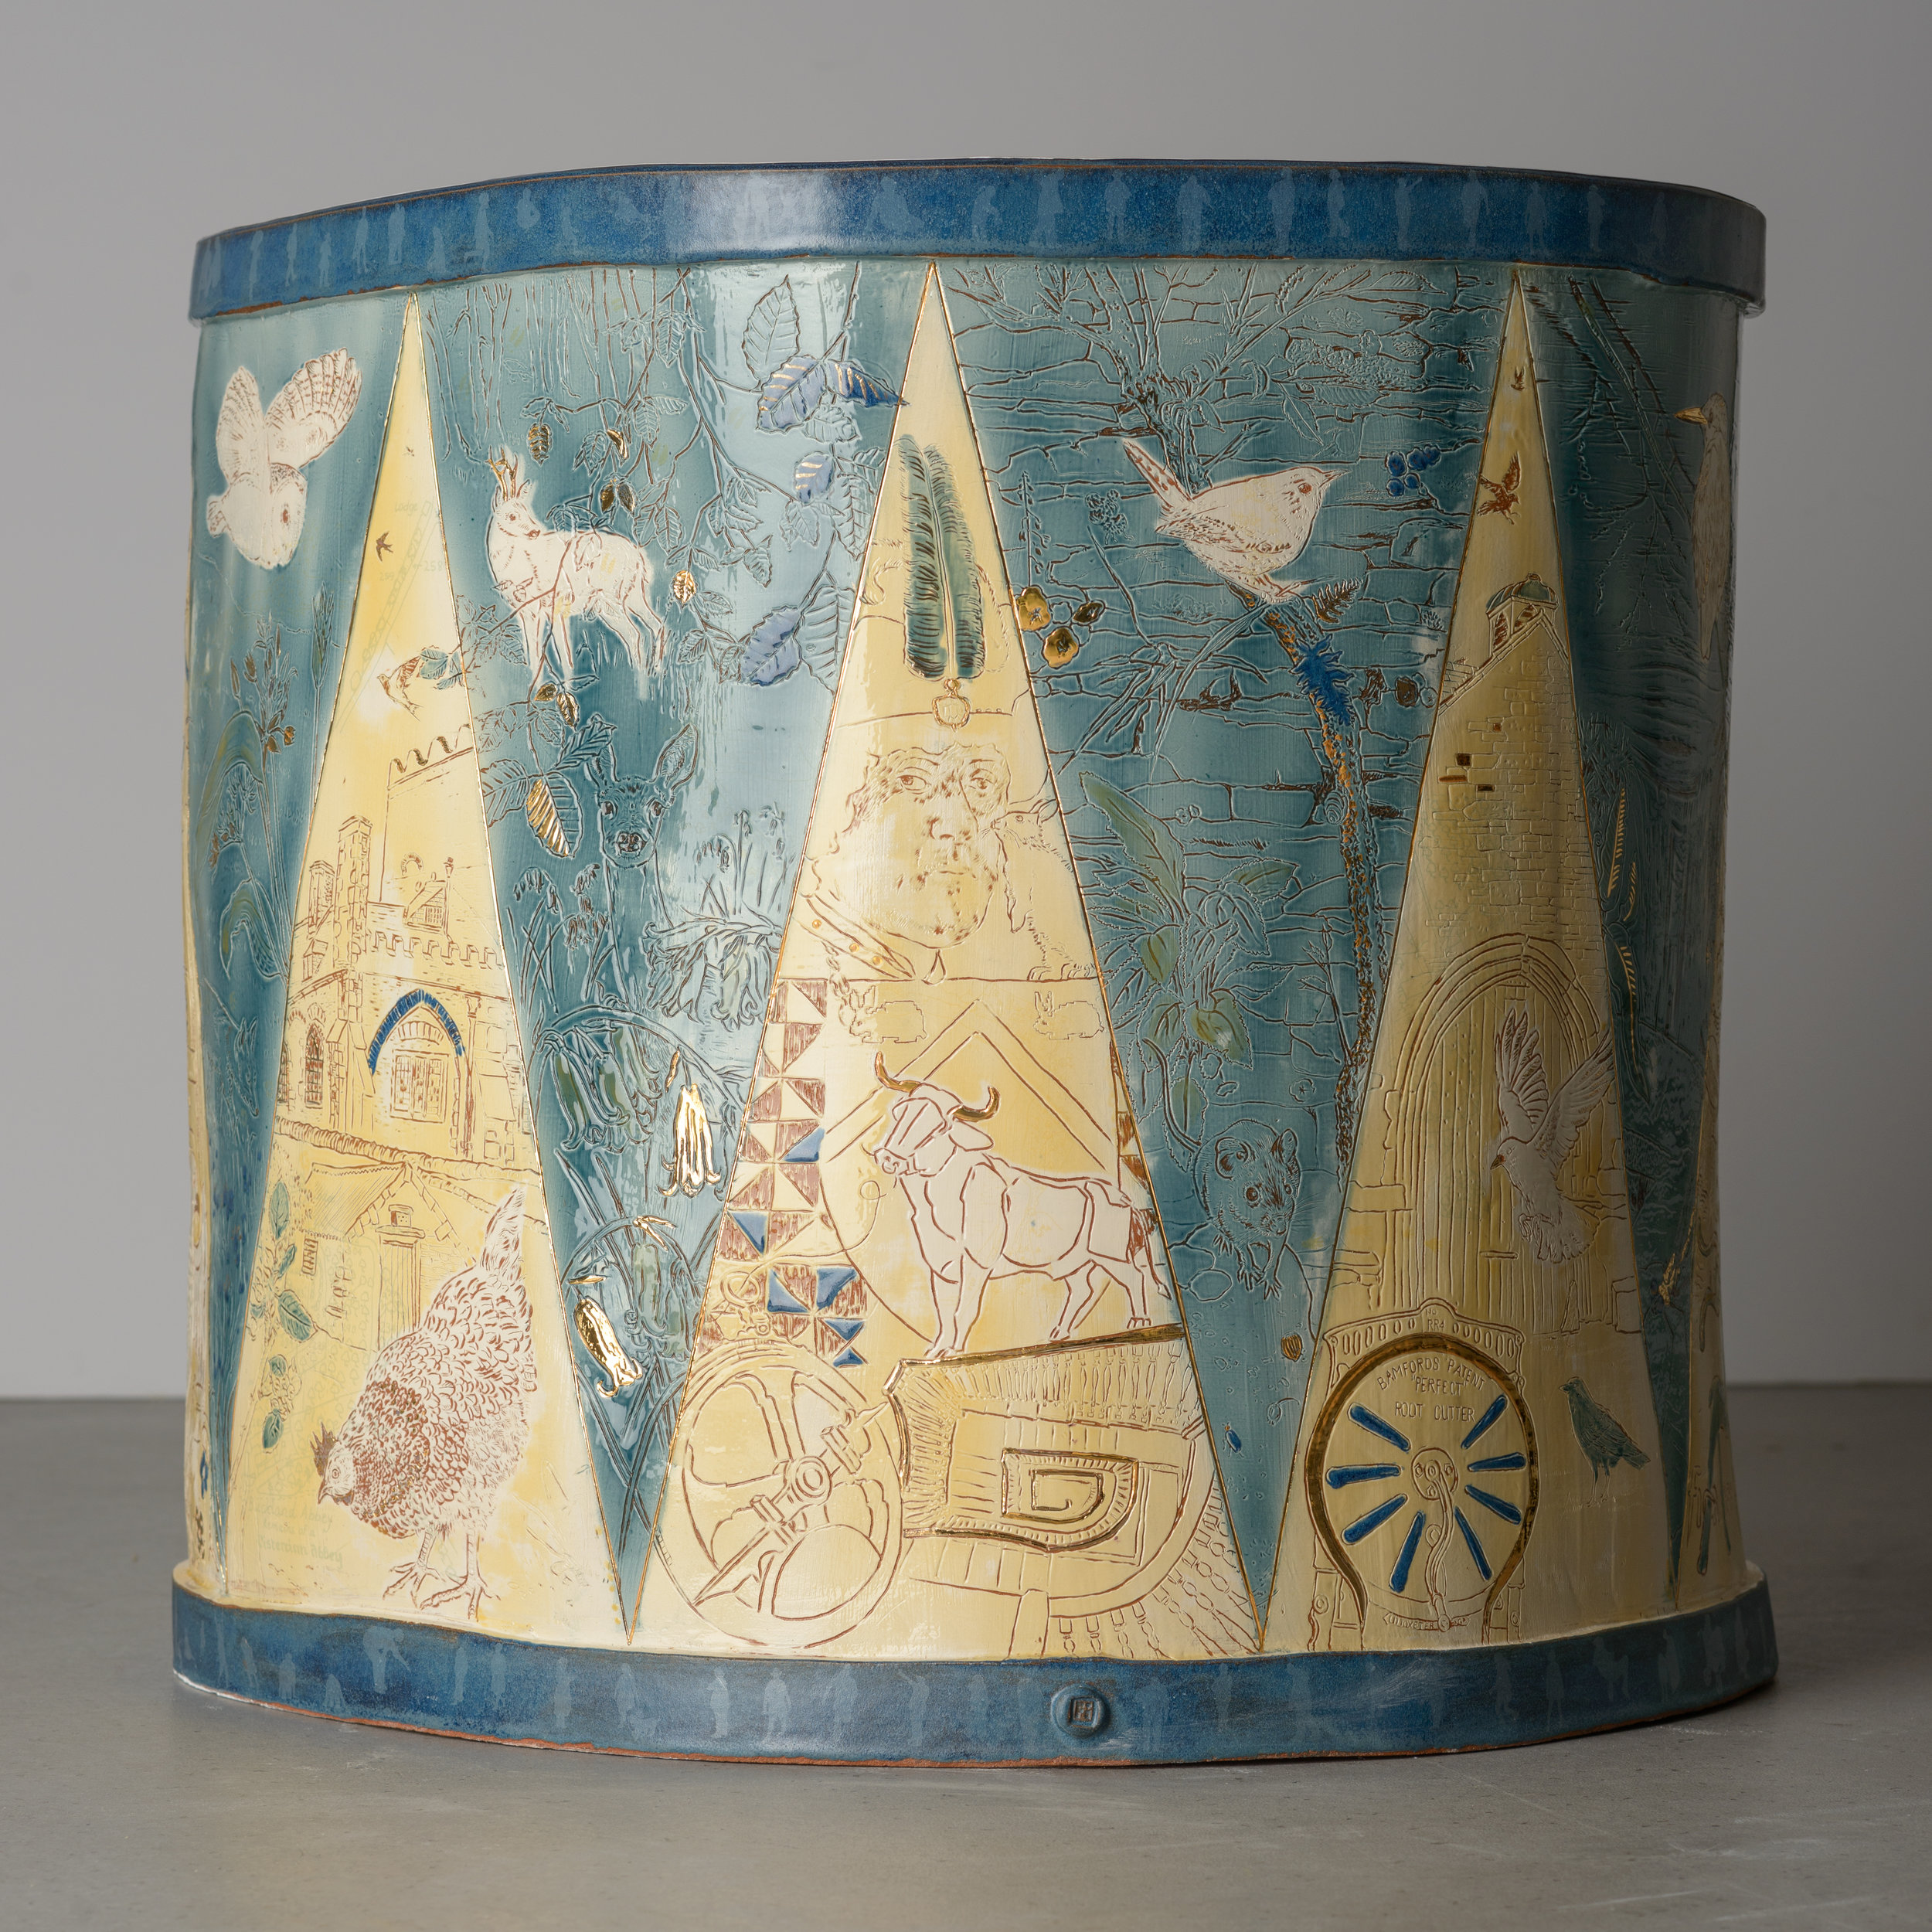 A World Encompassed. Handbuilt Illustrated Ceramic Drum. 60cms x 60 cms Photo credits Helge Mruck